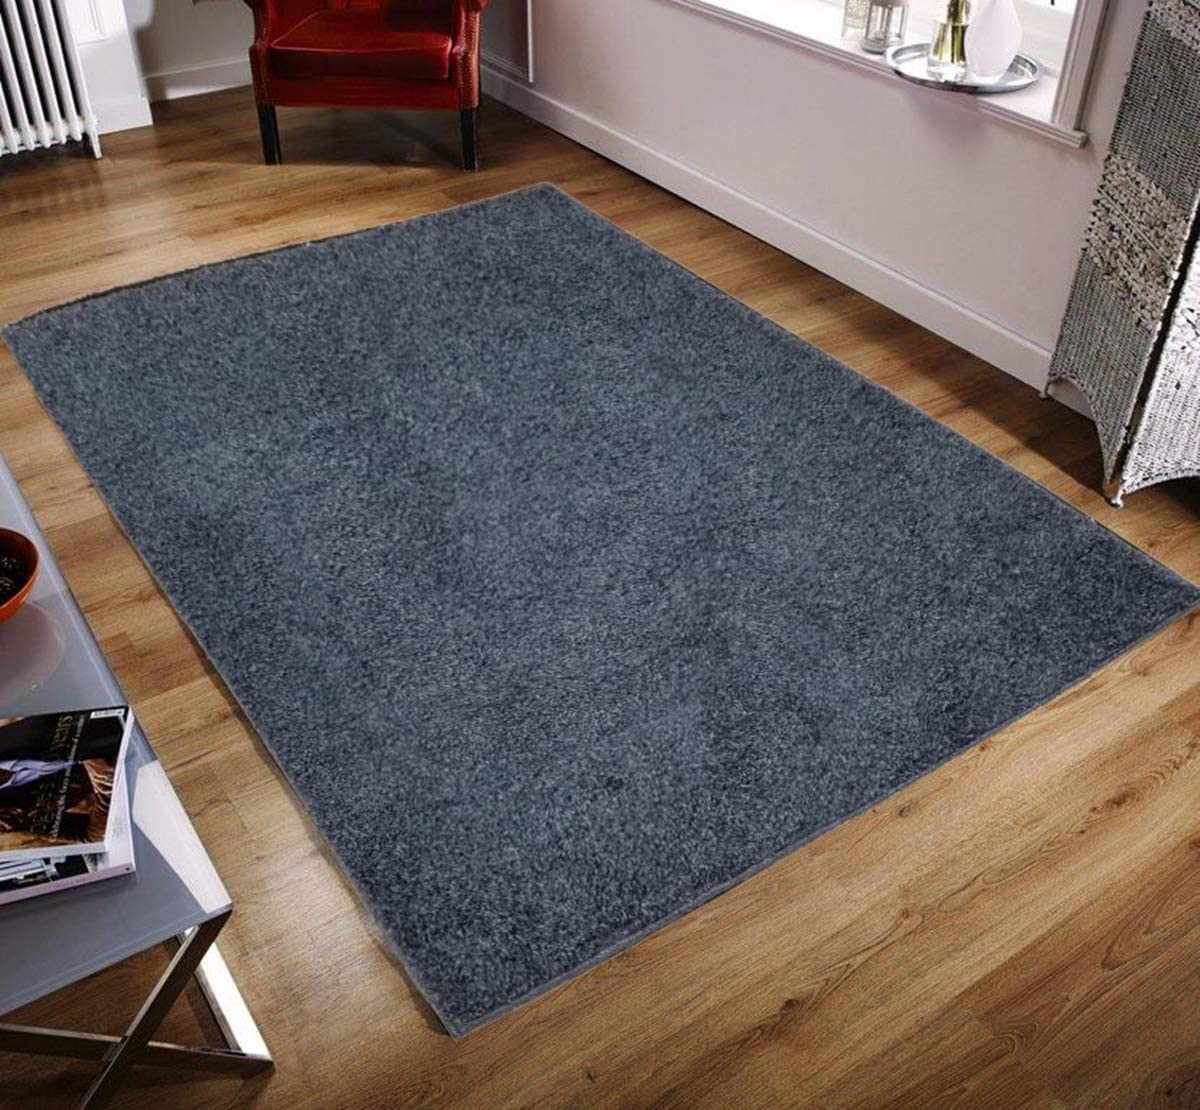 """Pyramid Home Decor Area Rugs Cozy Shaggy Area Rugs 5x7 for Living Room, Bedroom, Kitchen, Kids Room, Gloss, Soft, Easy Clean Shag Rug Contemporaryt, Blue 5x7 (4'9"""" x 7"""") 71jYRXy77xLSL1200_"""